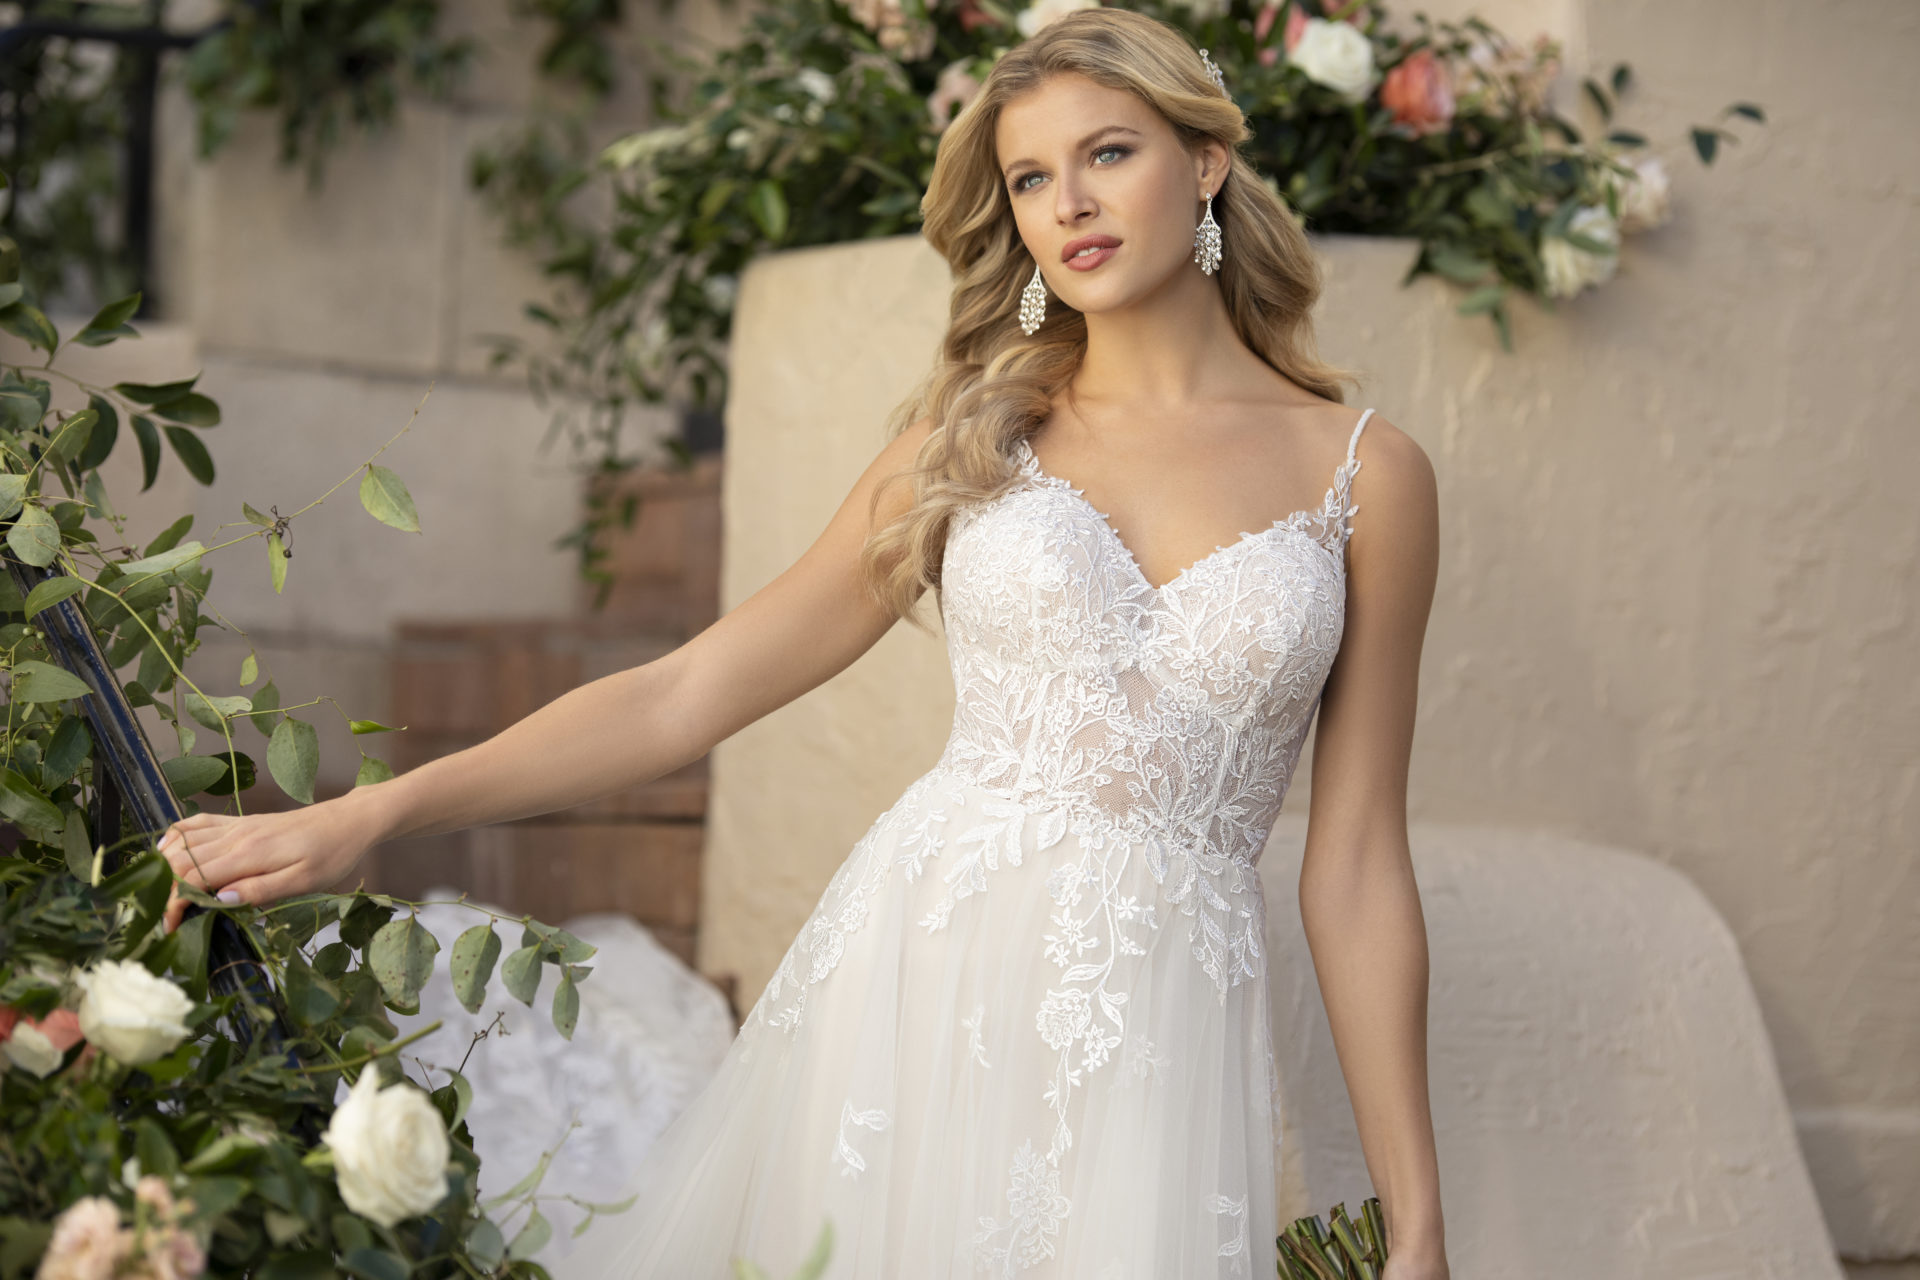 Even More Popular Wedding Dress Styles of 2021